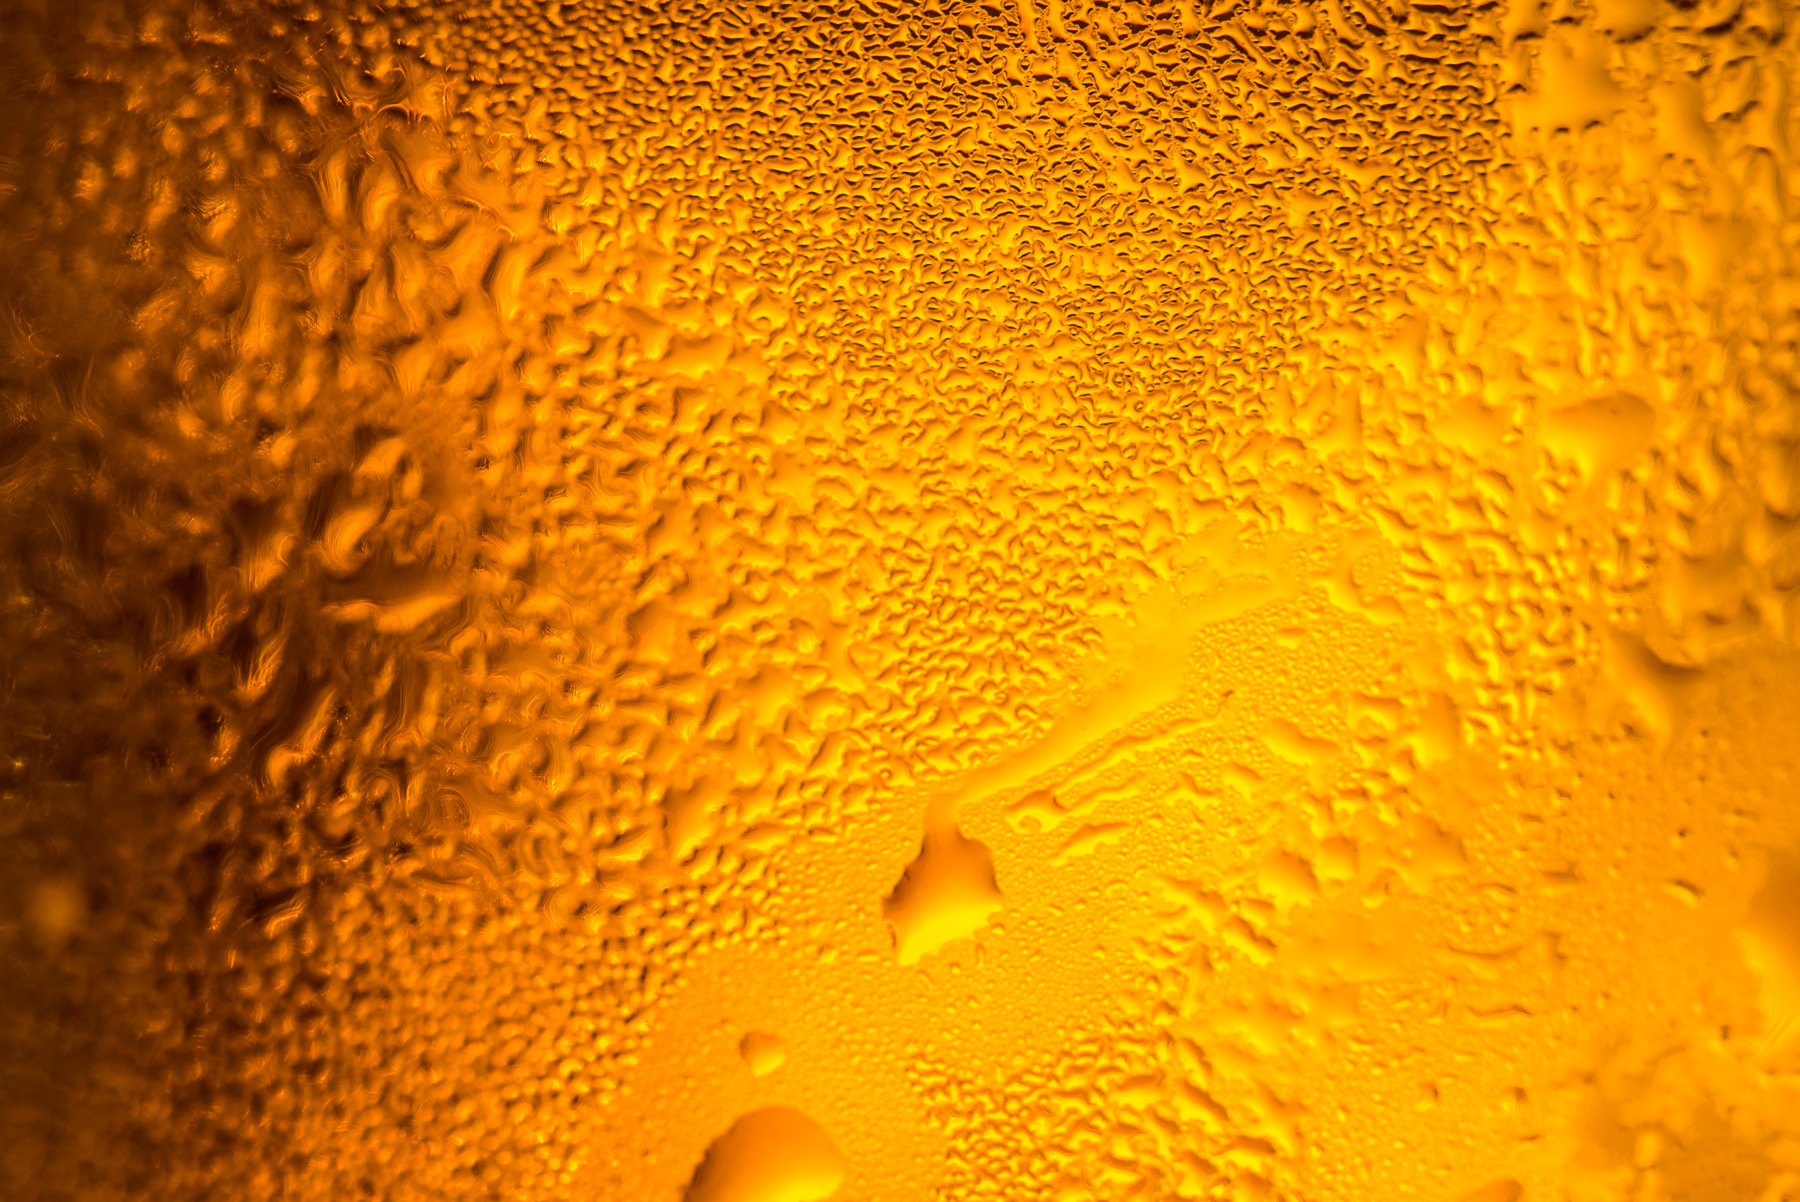 picture of a beer in a glass with water drops for download